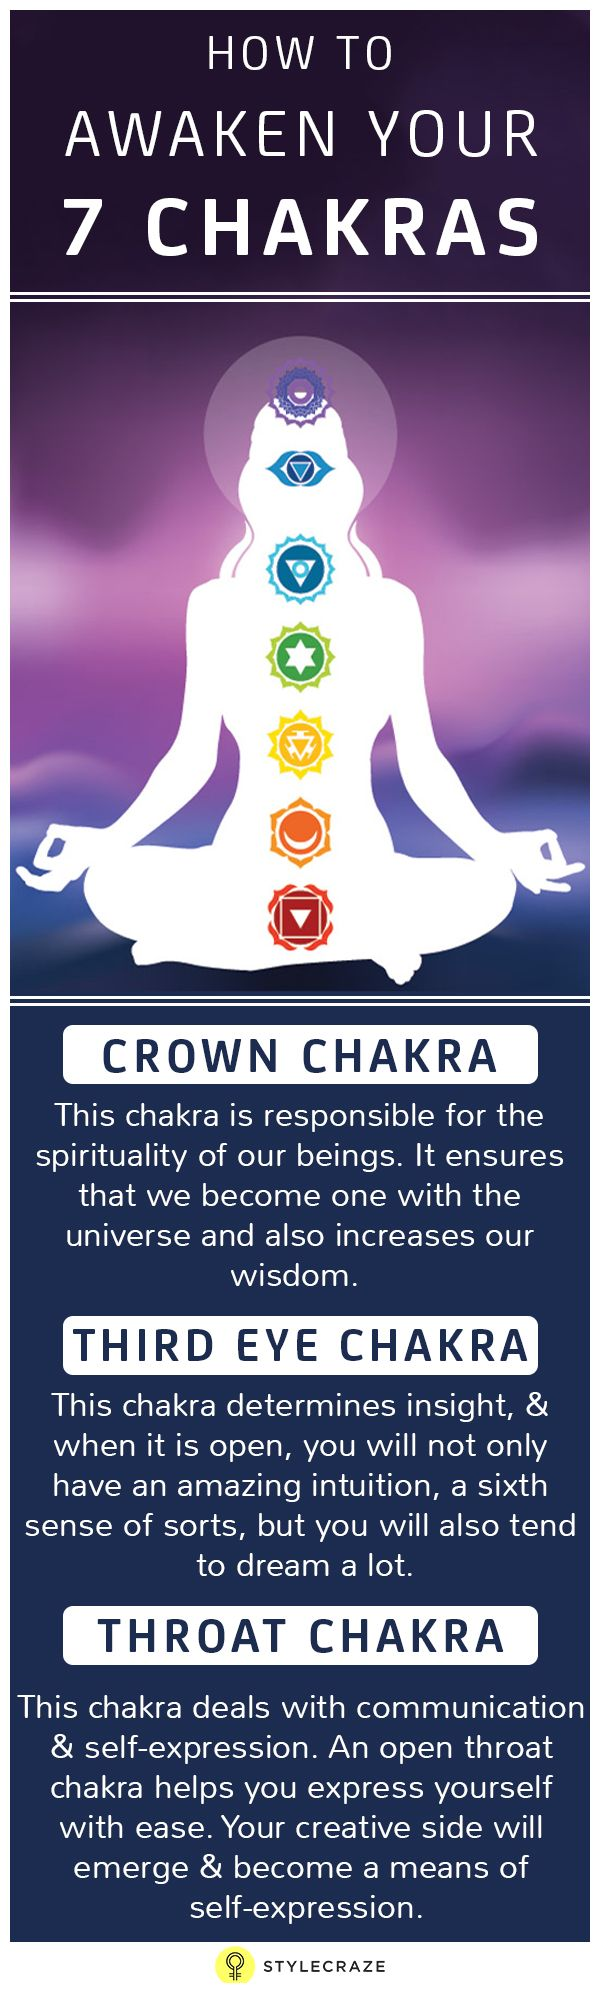 Hindu and Buddhist studies found pools of energy in our bodies that determine our cognitive qualities. There are seven basic chakras, four of which lie in our upper body that regulate our intellectual properties, and three of which supervise our instinctual properties in the lower body.